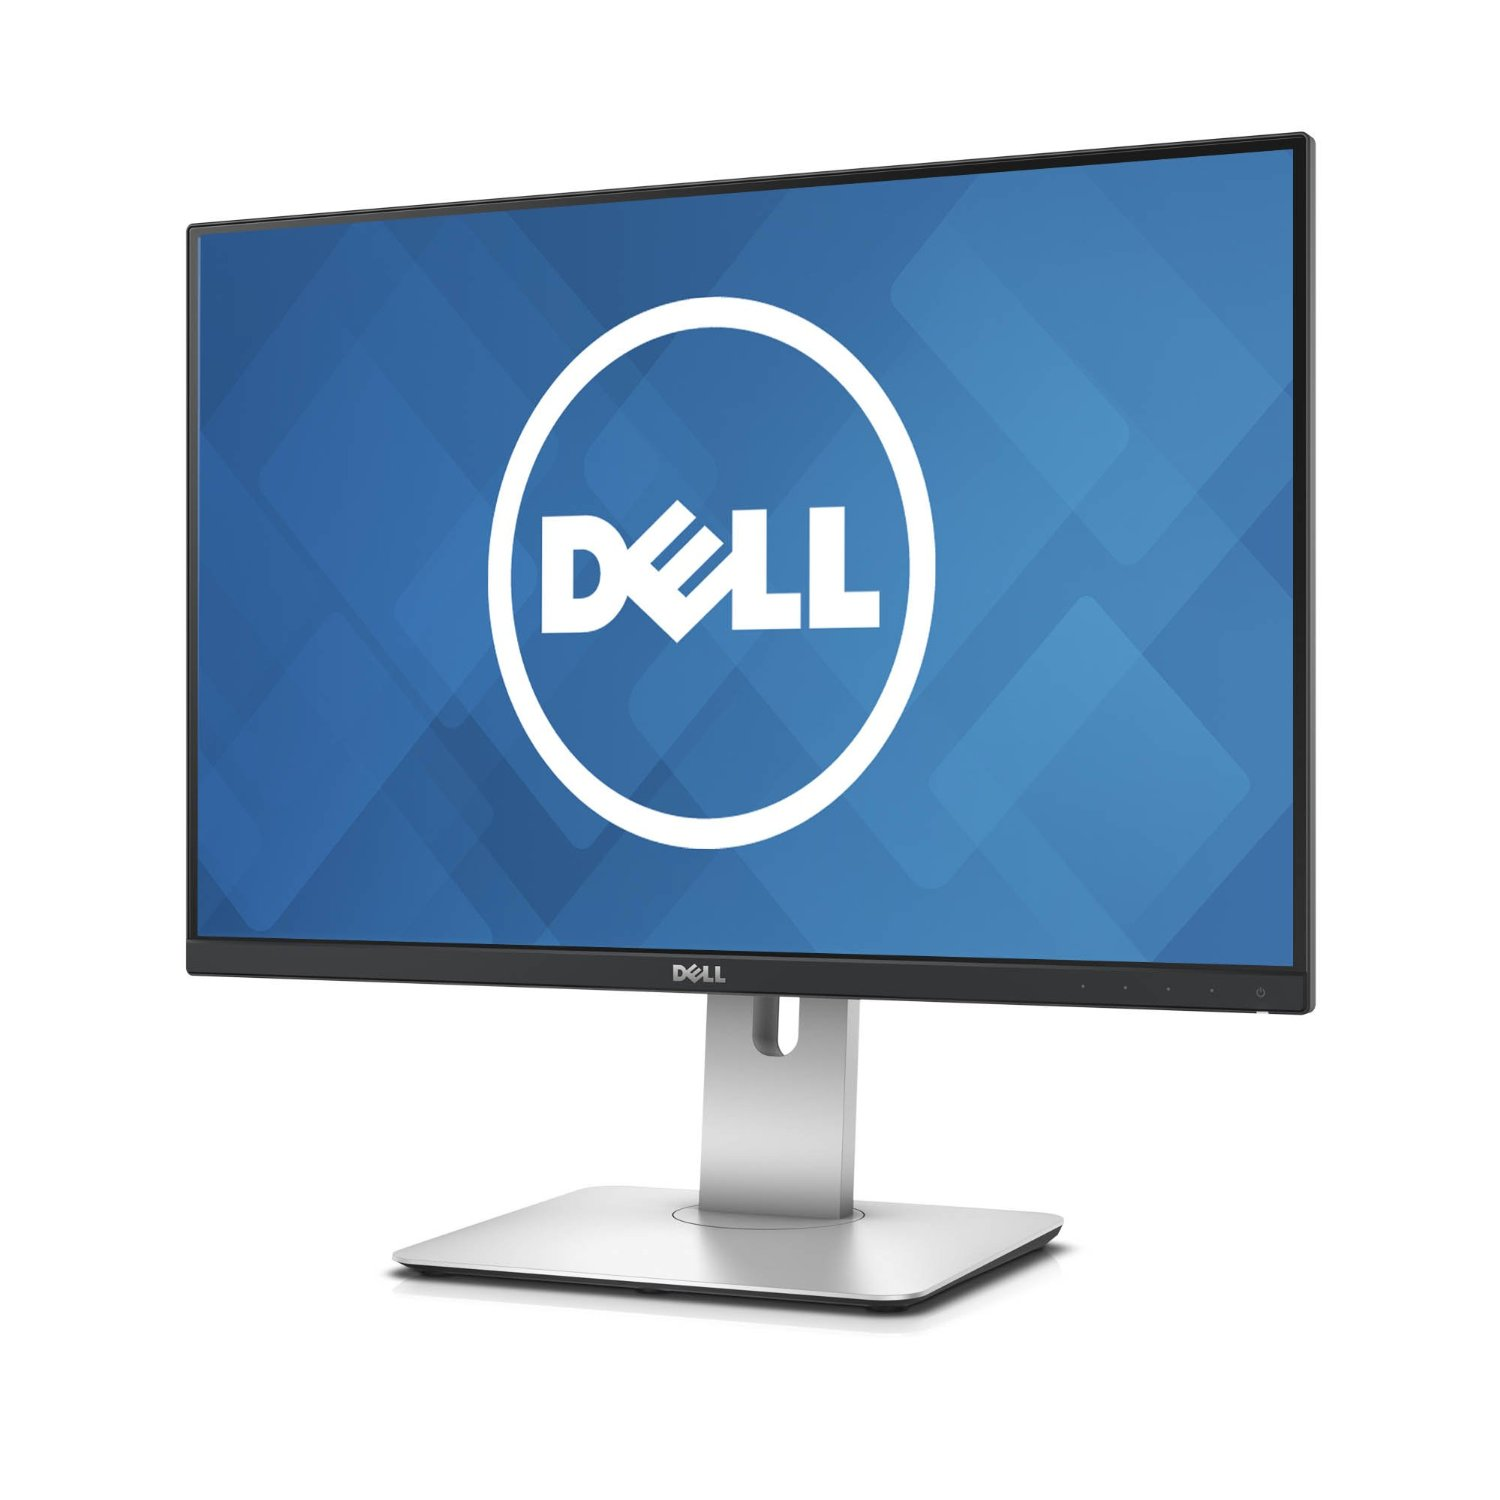 Màn hình máy tính Dell Monitor S2421HN 23.8 Wide LED, Full HD 1920 x 1080, 2 x HDMI 1.4, 1 x  3.5mm Audio Out